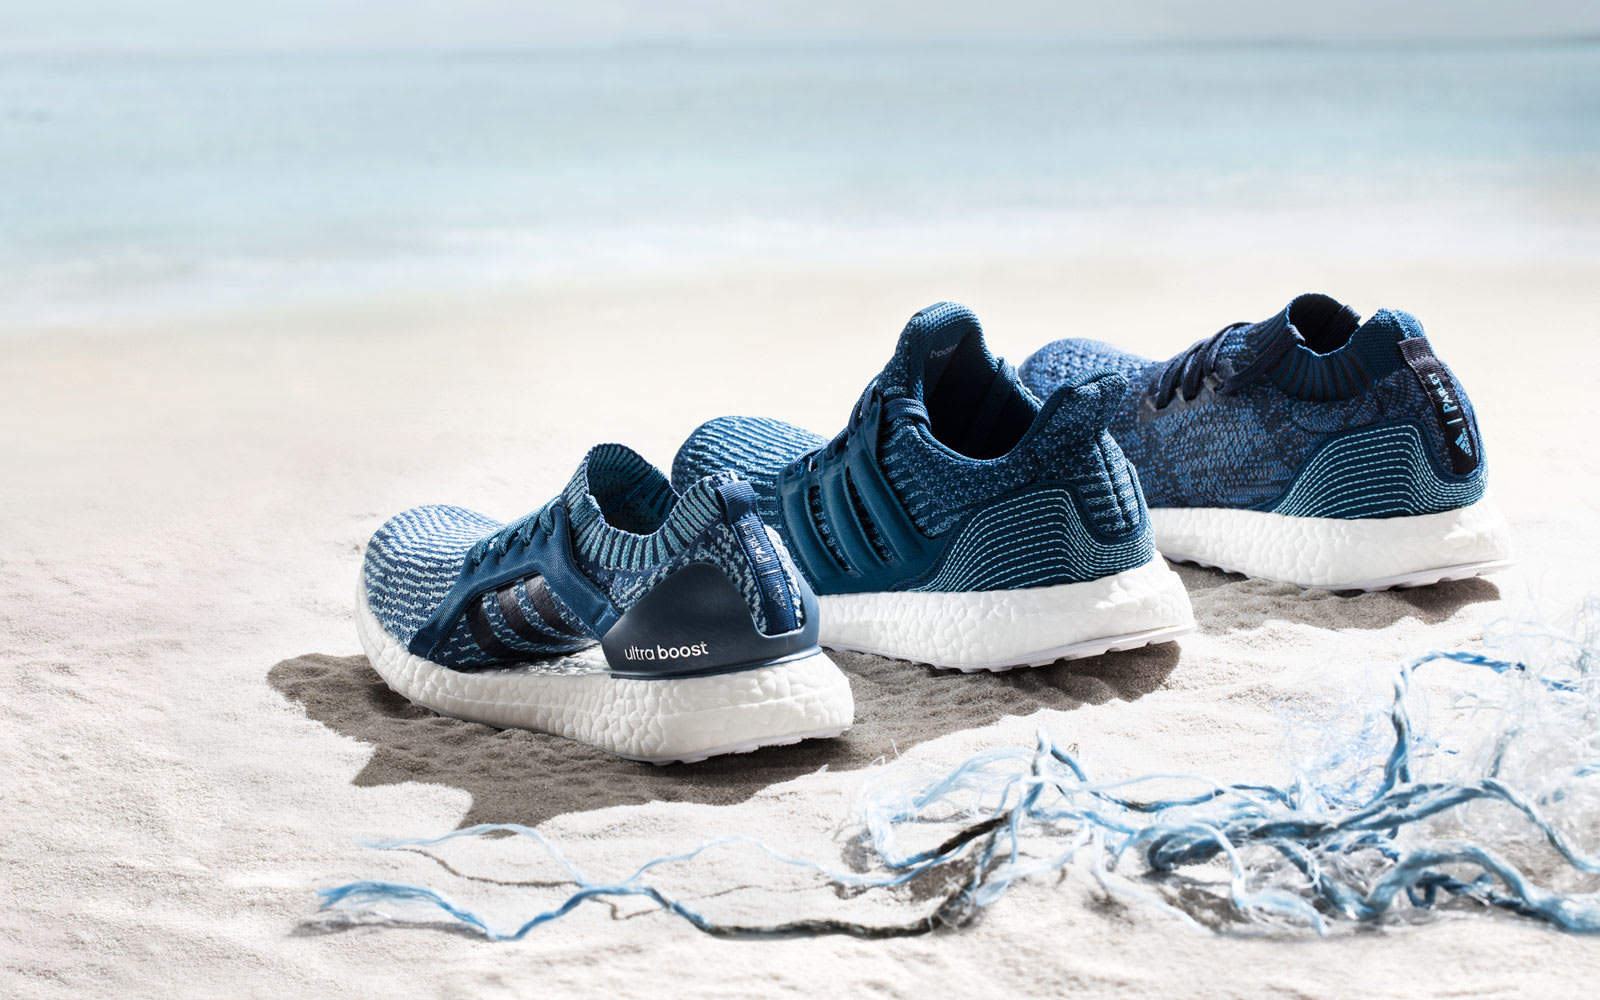 05a06a21586a Adidas will sell more shoes partially made with ocean trash